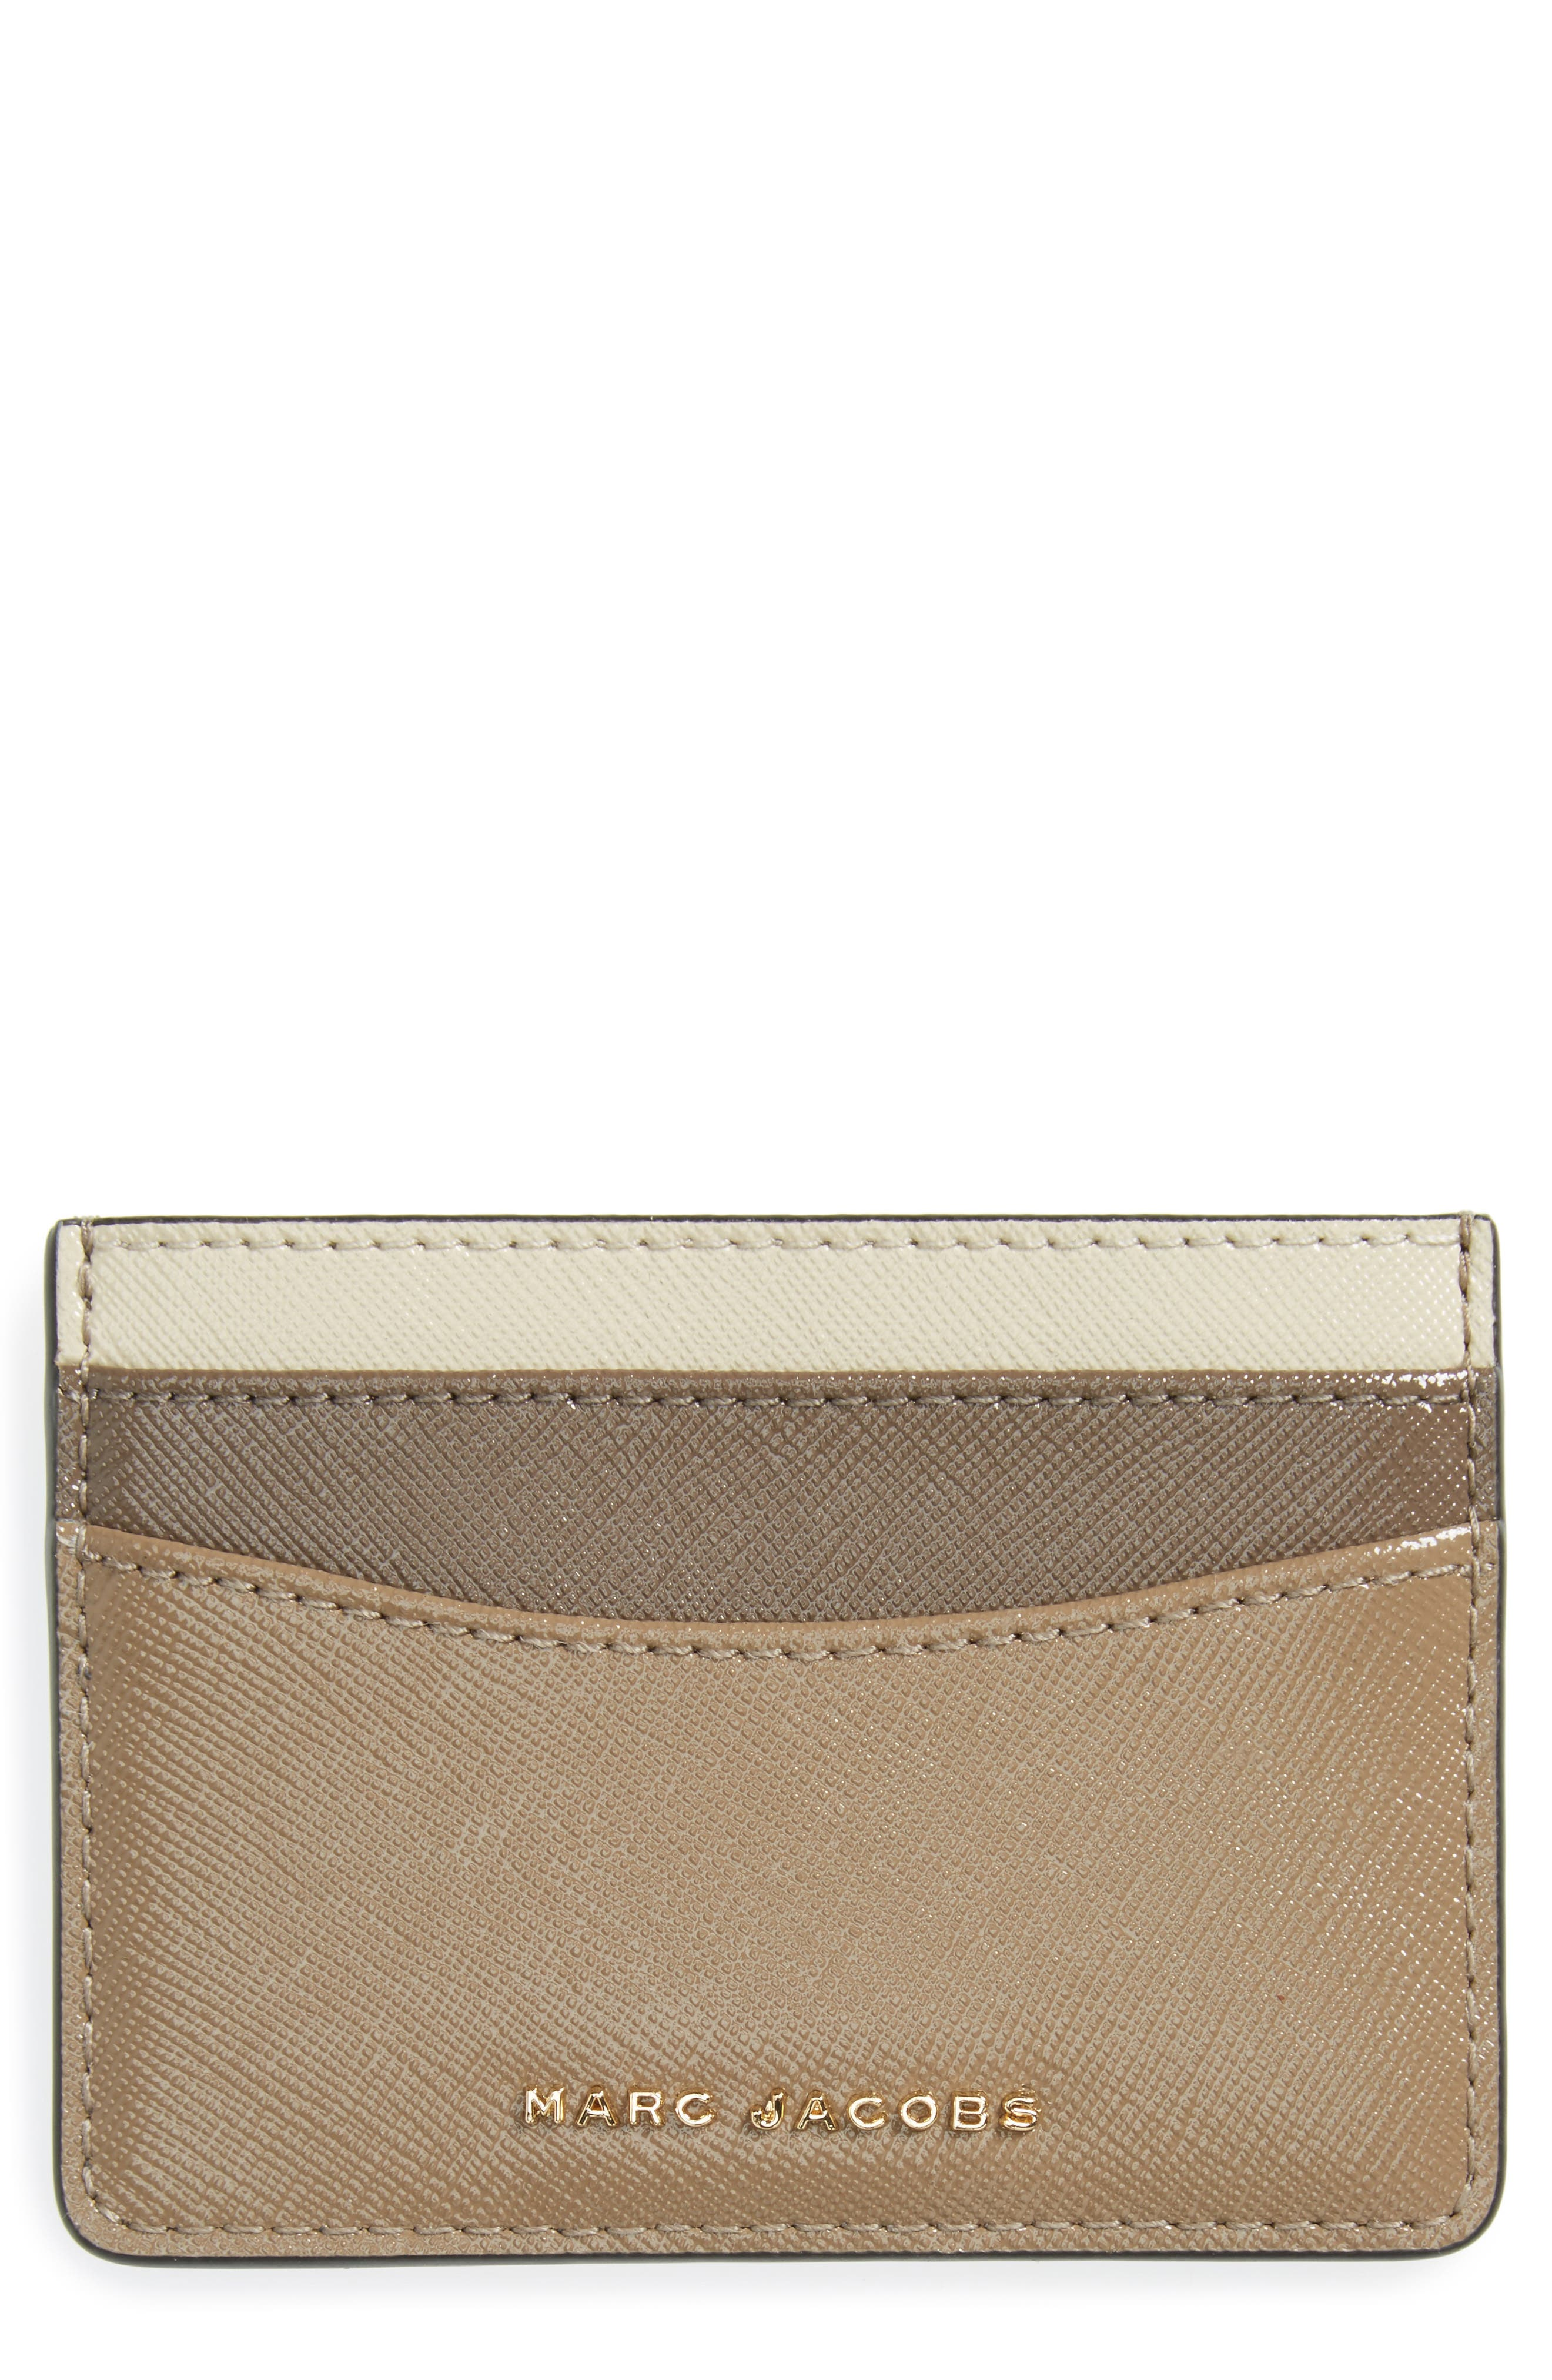 Color Block Saffiano Leather Card Case,                             Main thumbnail 1, color,                             French Grey Multi